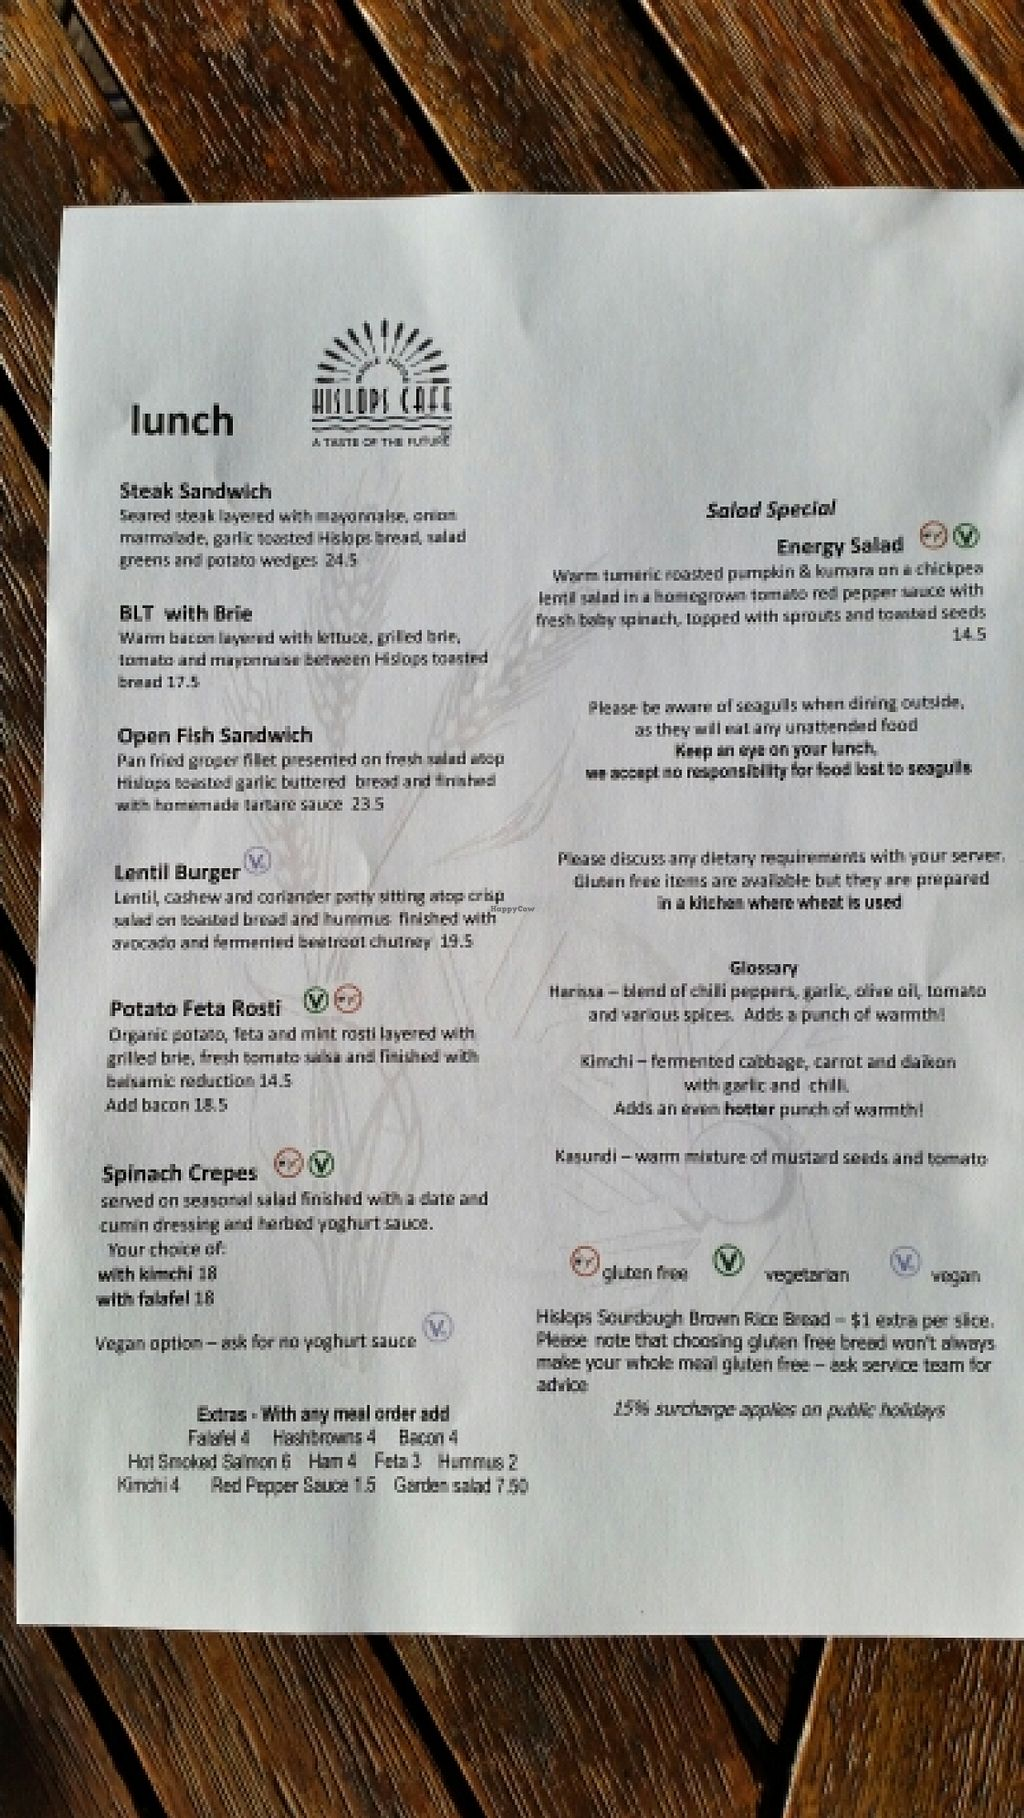 """Photo of Hislop's Cafe  by <a href=""""/members/profile/AndyTheVWDude"""">AndyTheVWDude</a> <br/>Hislops Lunch menu April 2016 <br/> April 19, 2016  - <a href='/contact/abuse/image/6890/145375'>Report</a>"""